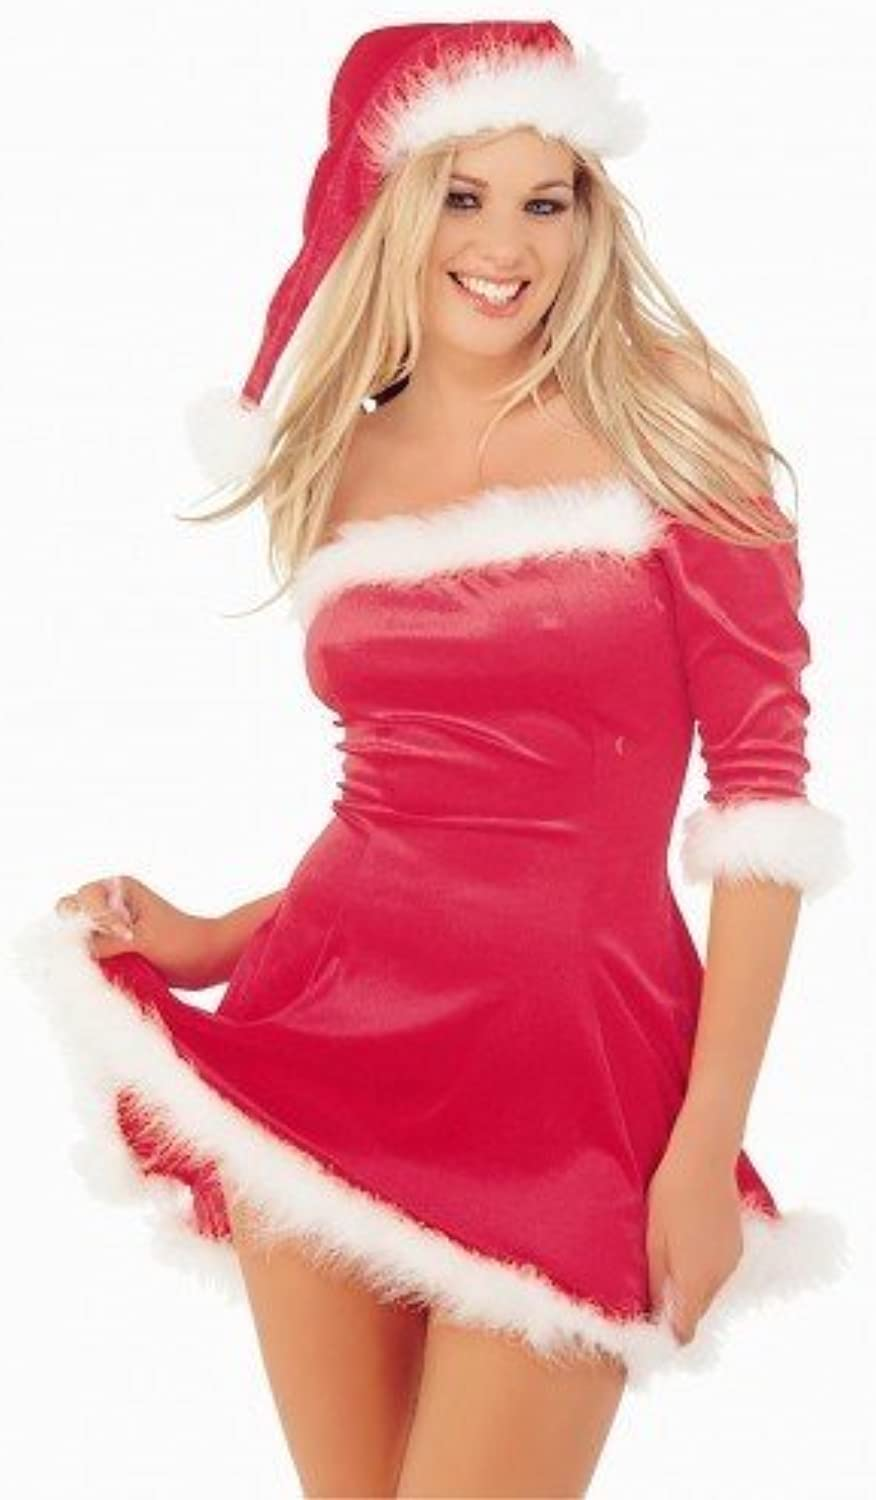 LADIES rosso VELVET SEXY SANTA XMAS OUTFIT DRESS HAT donna CHRISTMAS FANCY DRESS WITH HAT Dimensione S- M- L- XL (SMtutti 8-10)